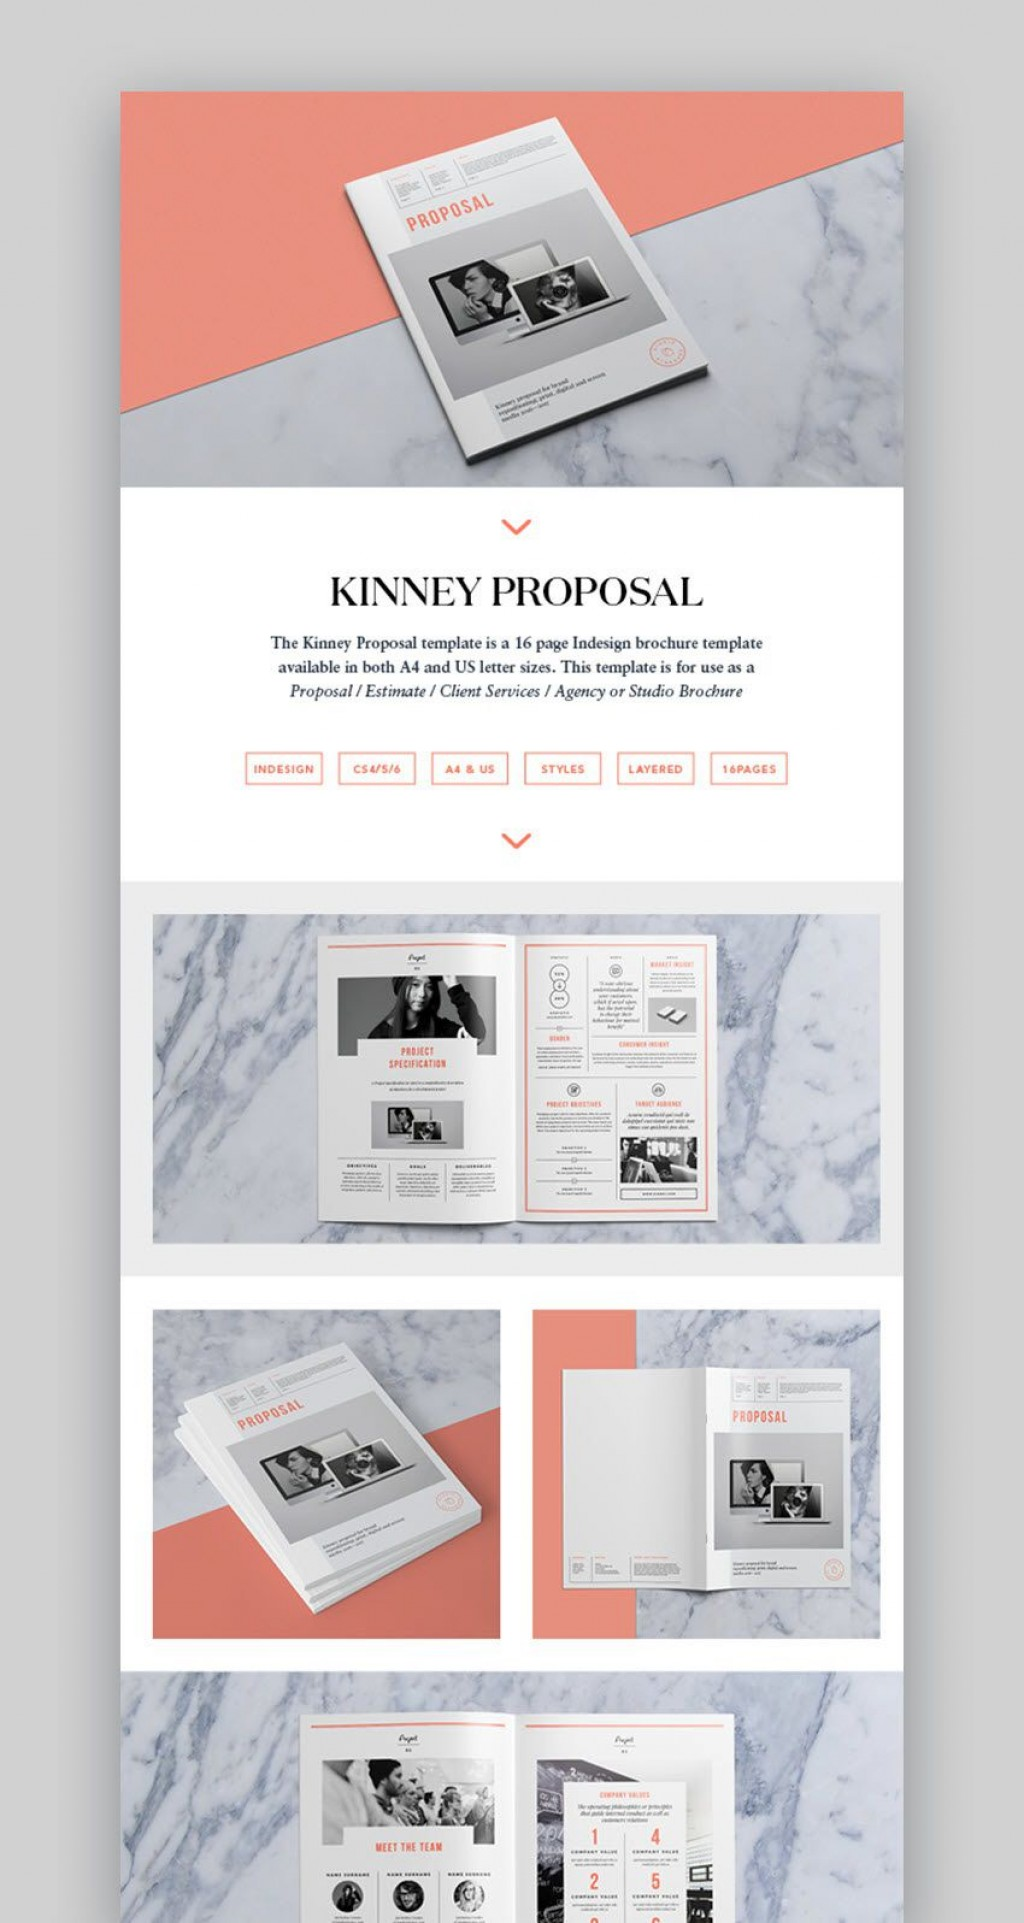 003 Remarkable Graphic Design Proposal Template Doc Free Highest Quality Large